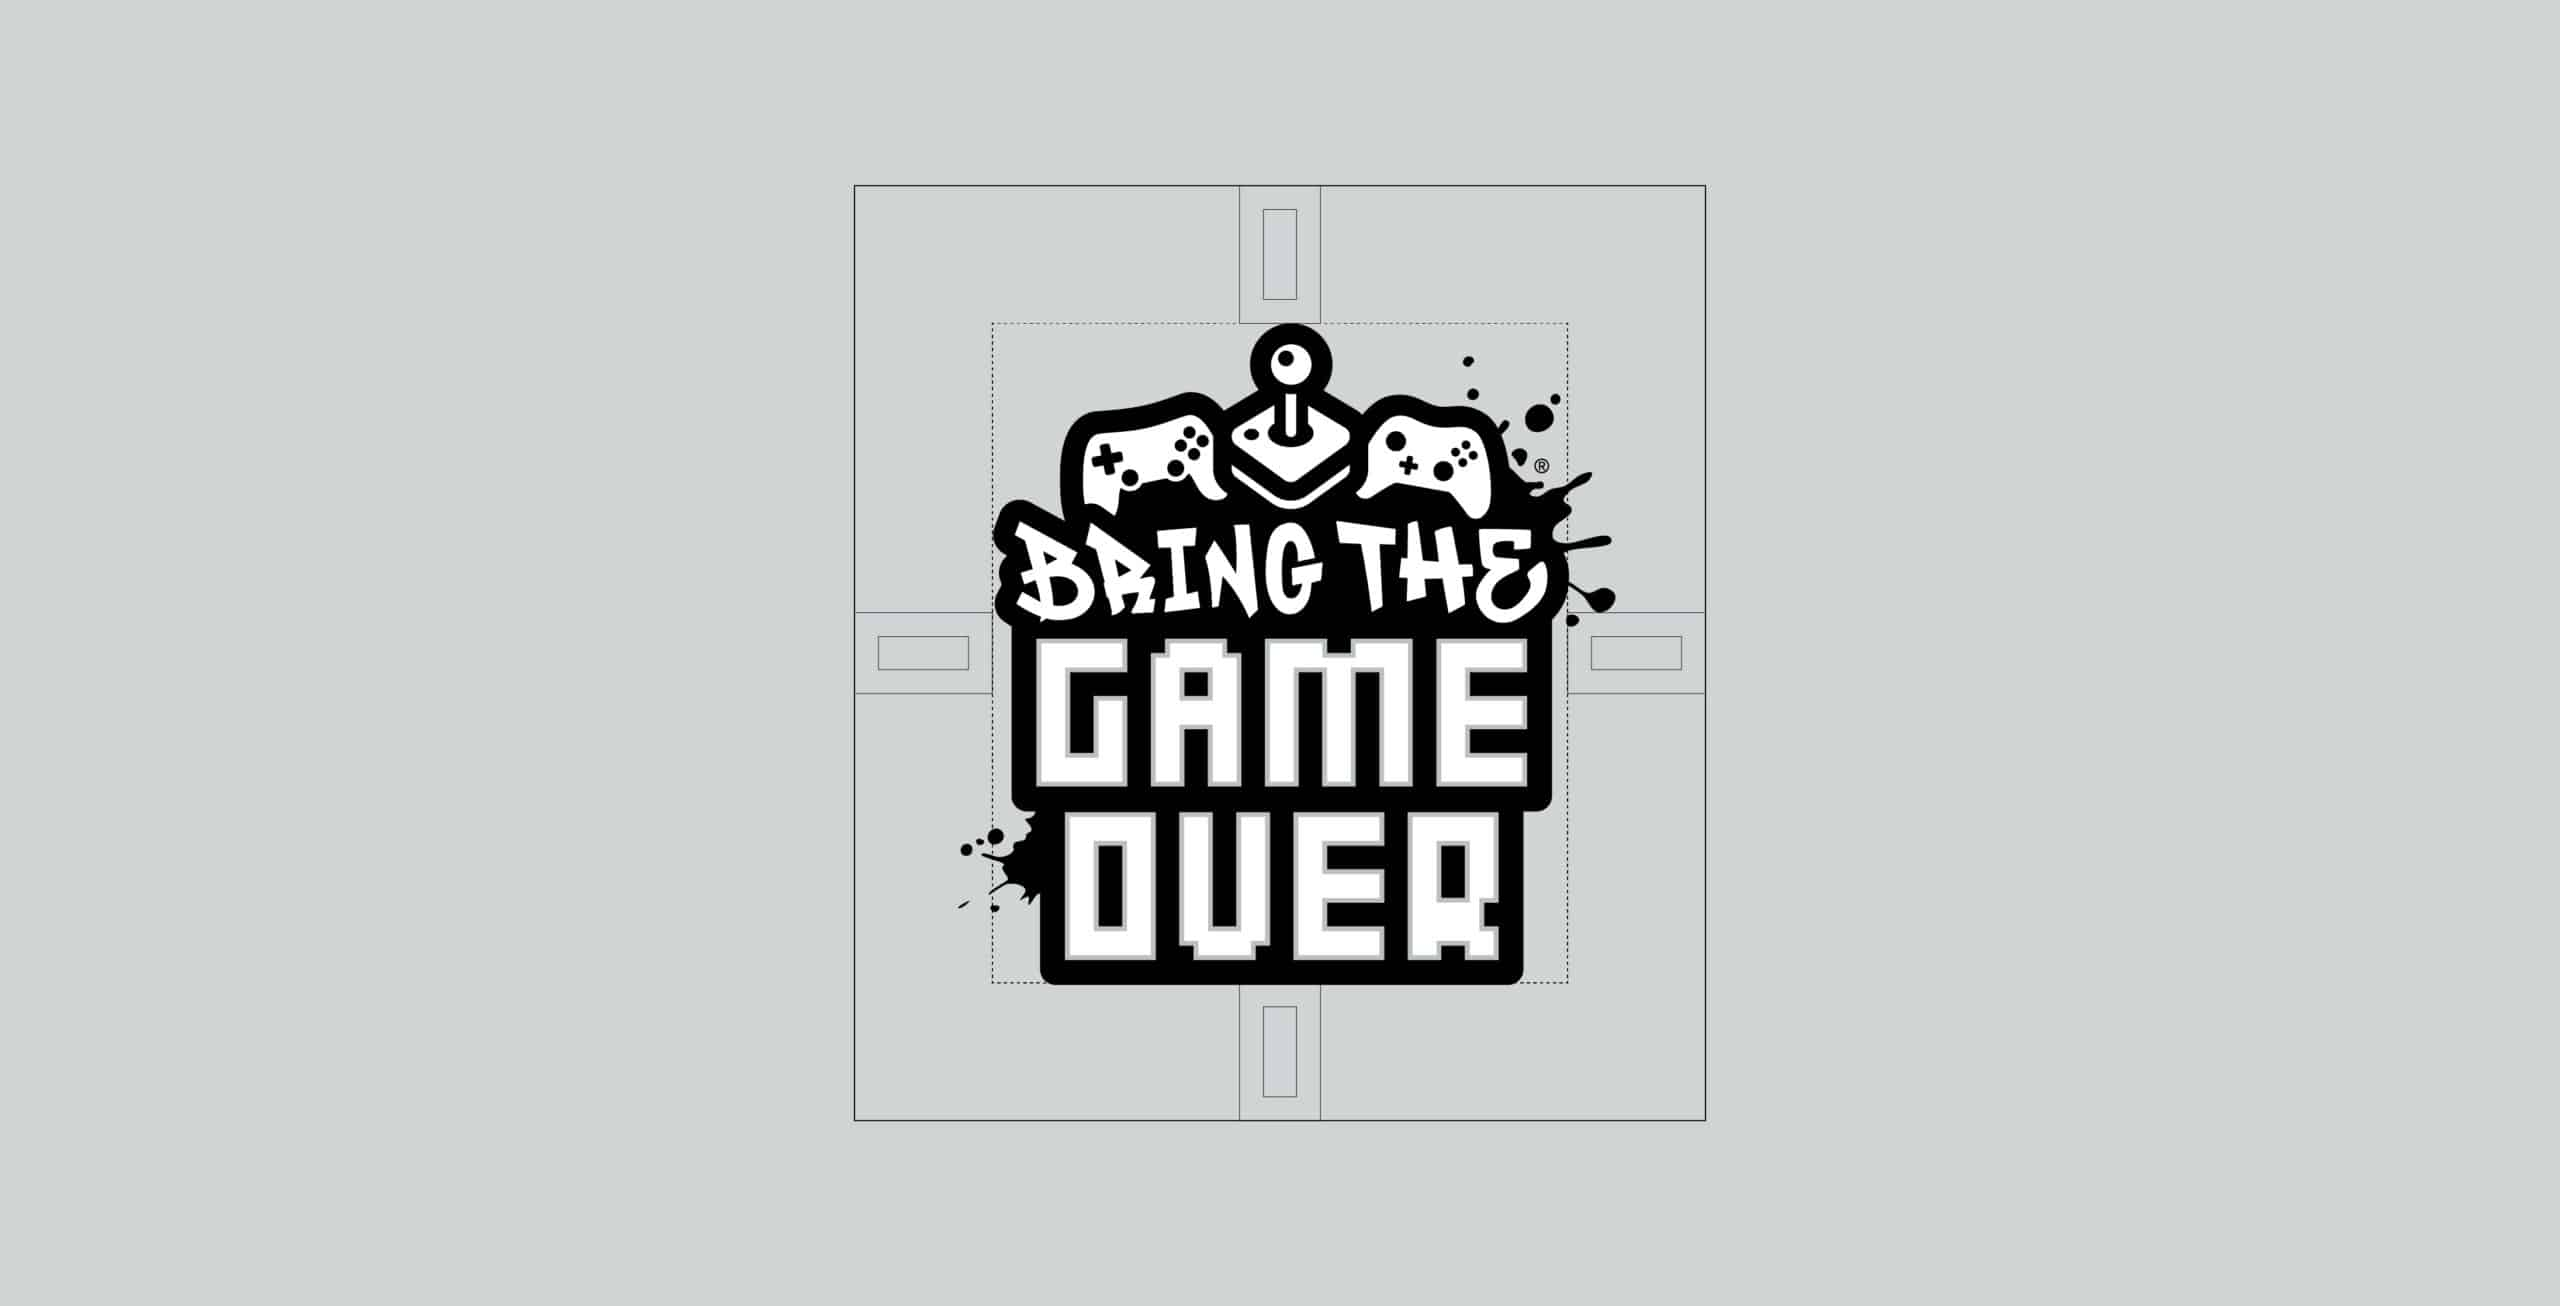 Bring the game over logo usage